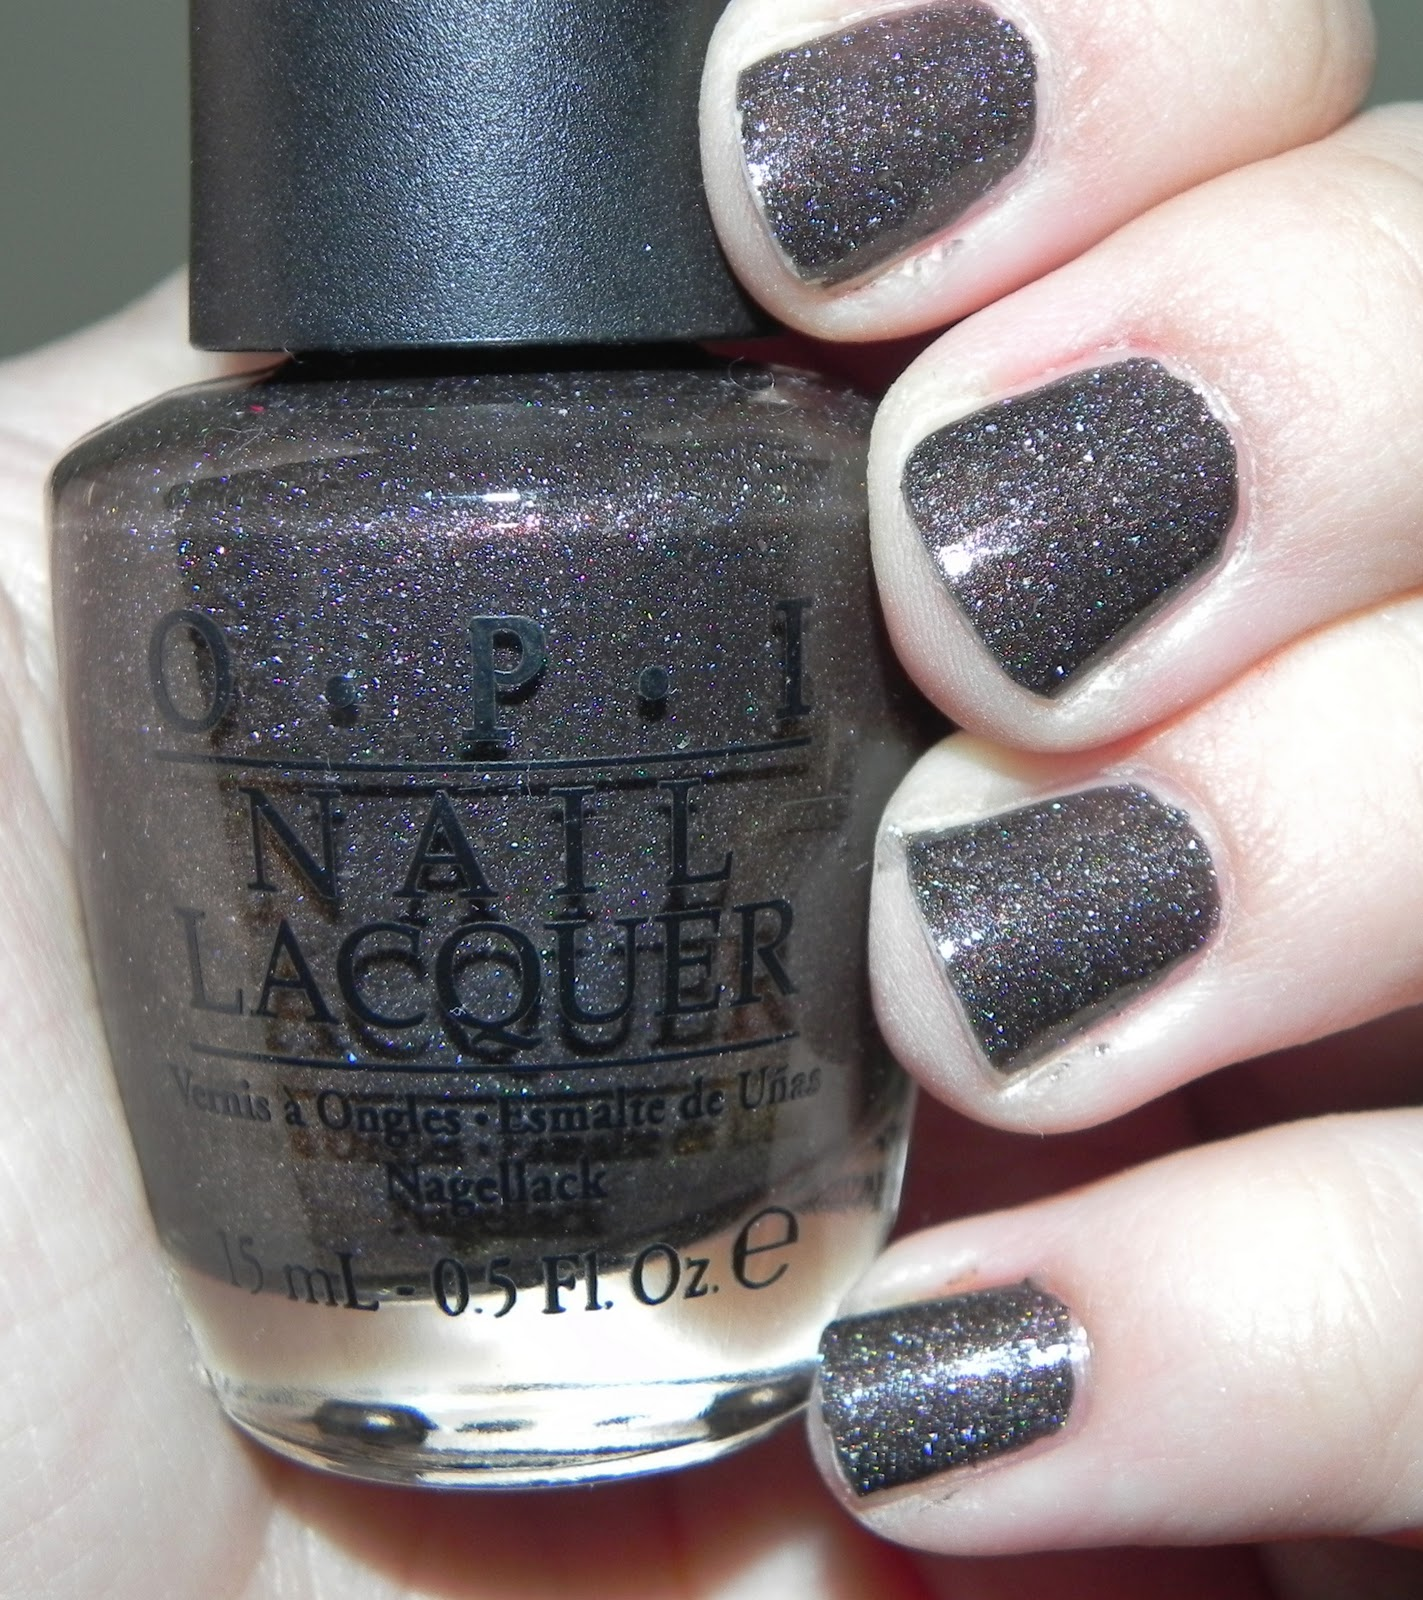 Nail of the Day: My Private Jet by OPI